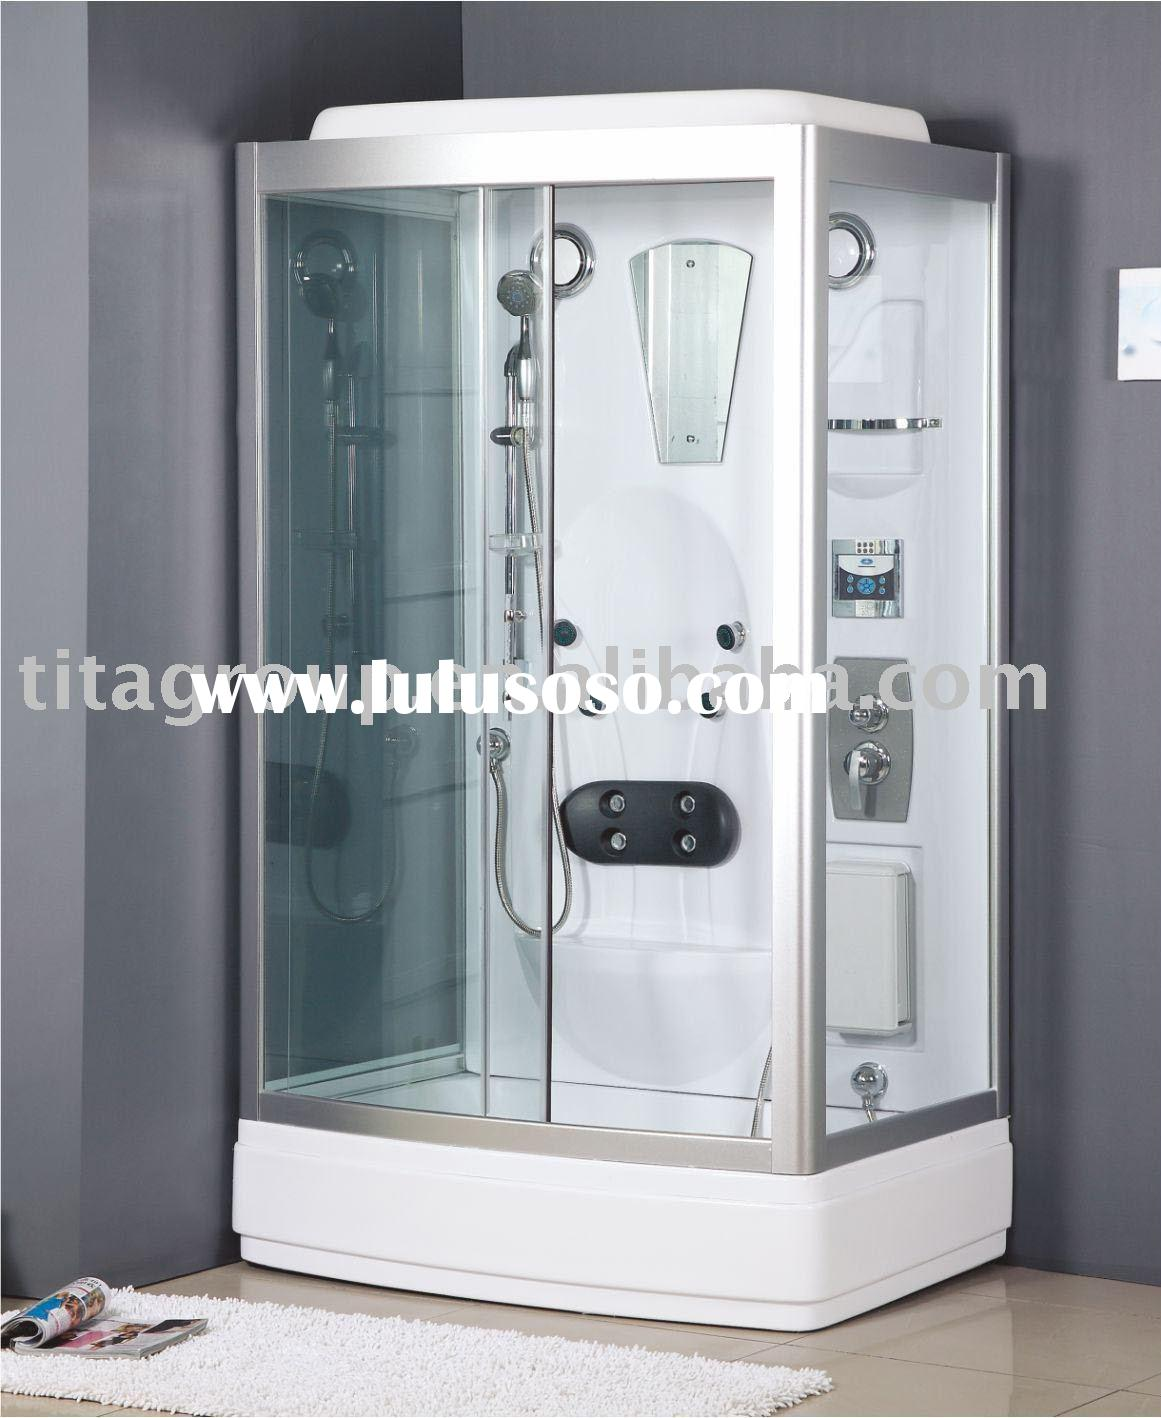 Home Steam Room Home Steam Room Manufacturers In Lulusoso